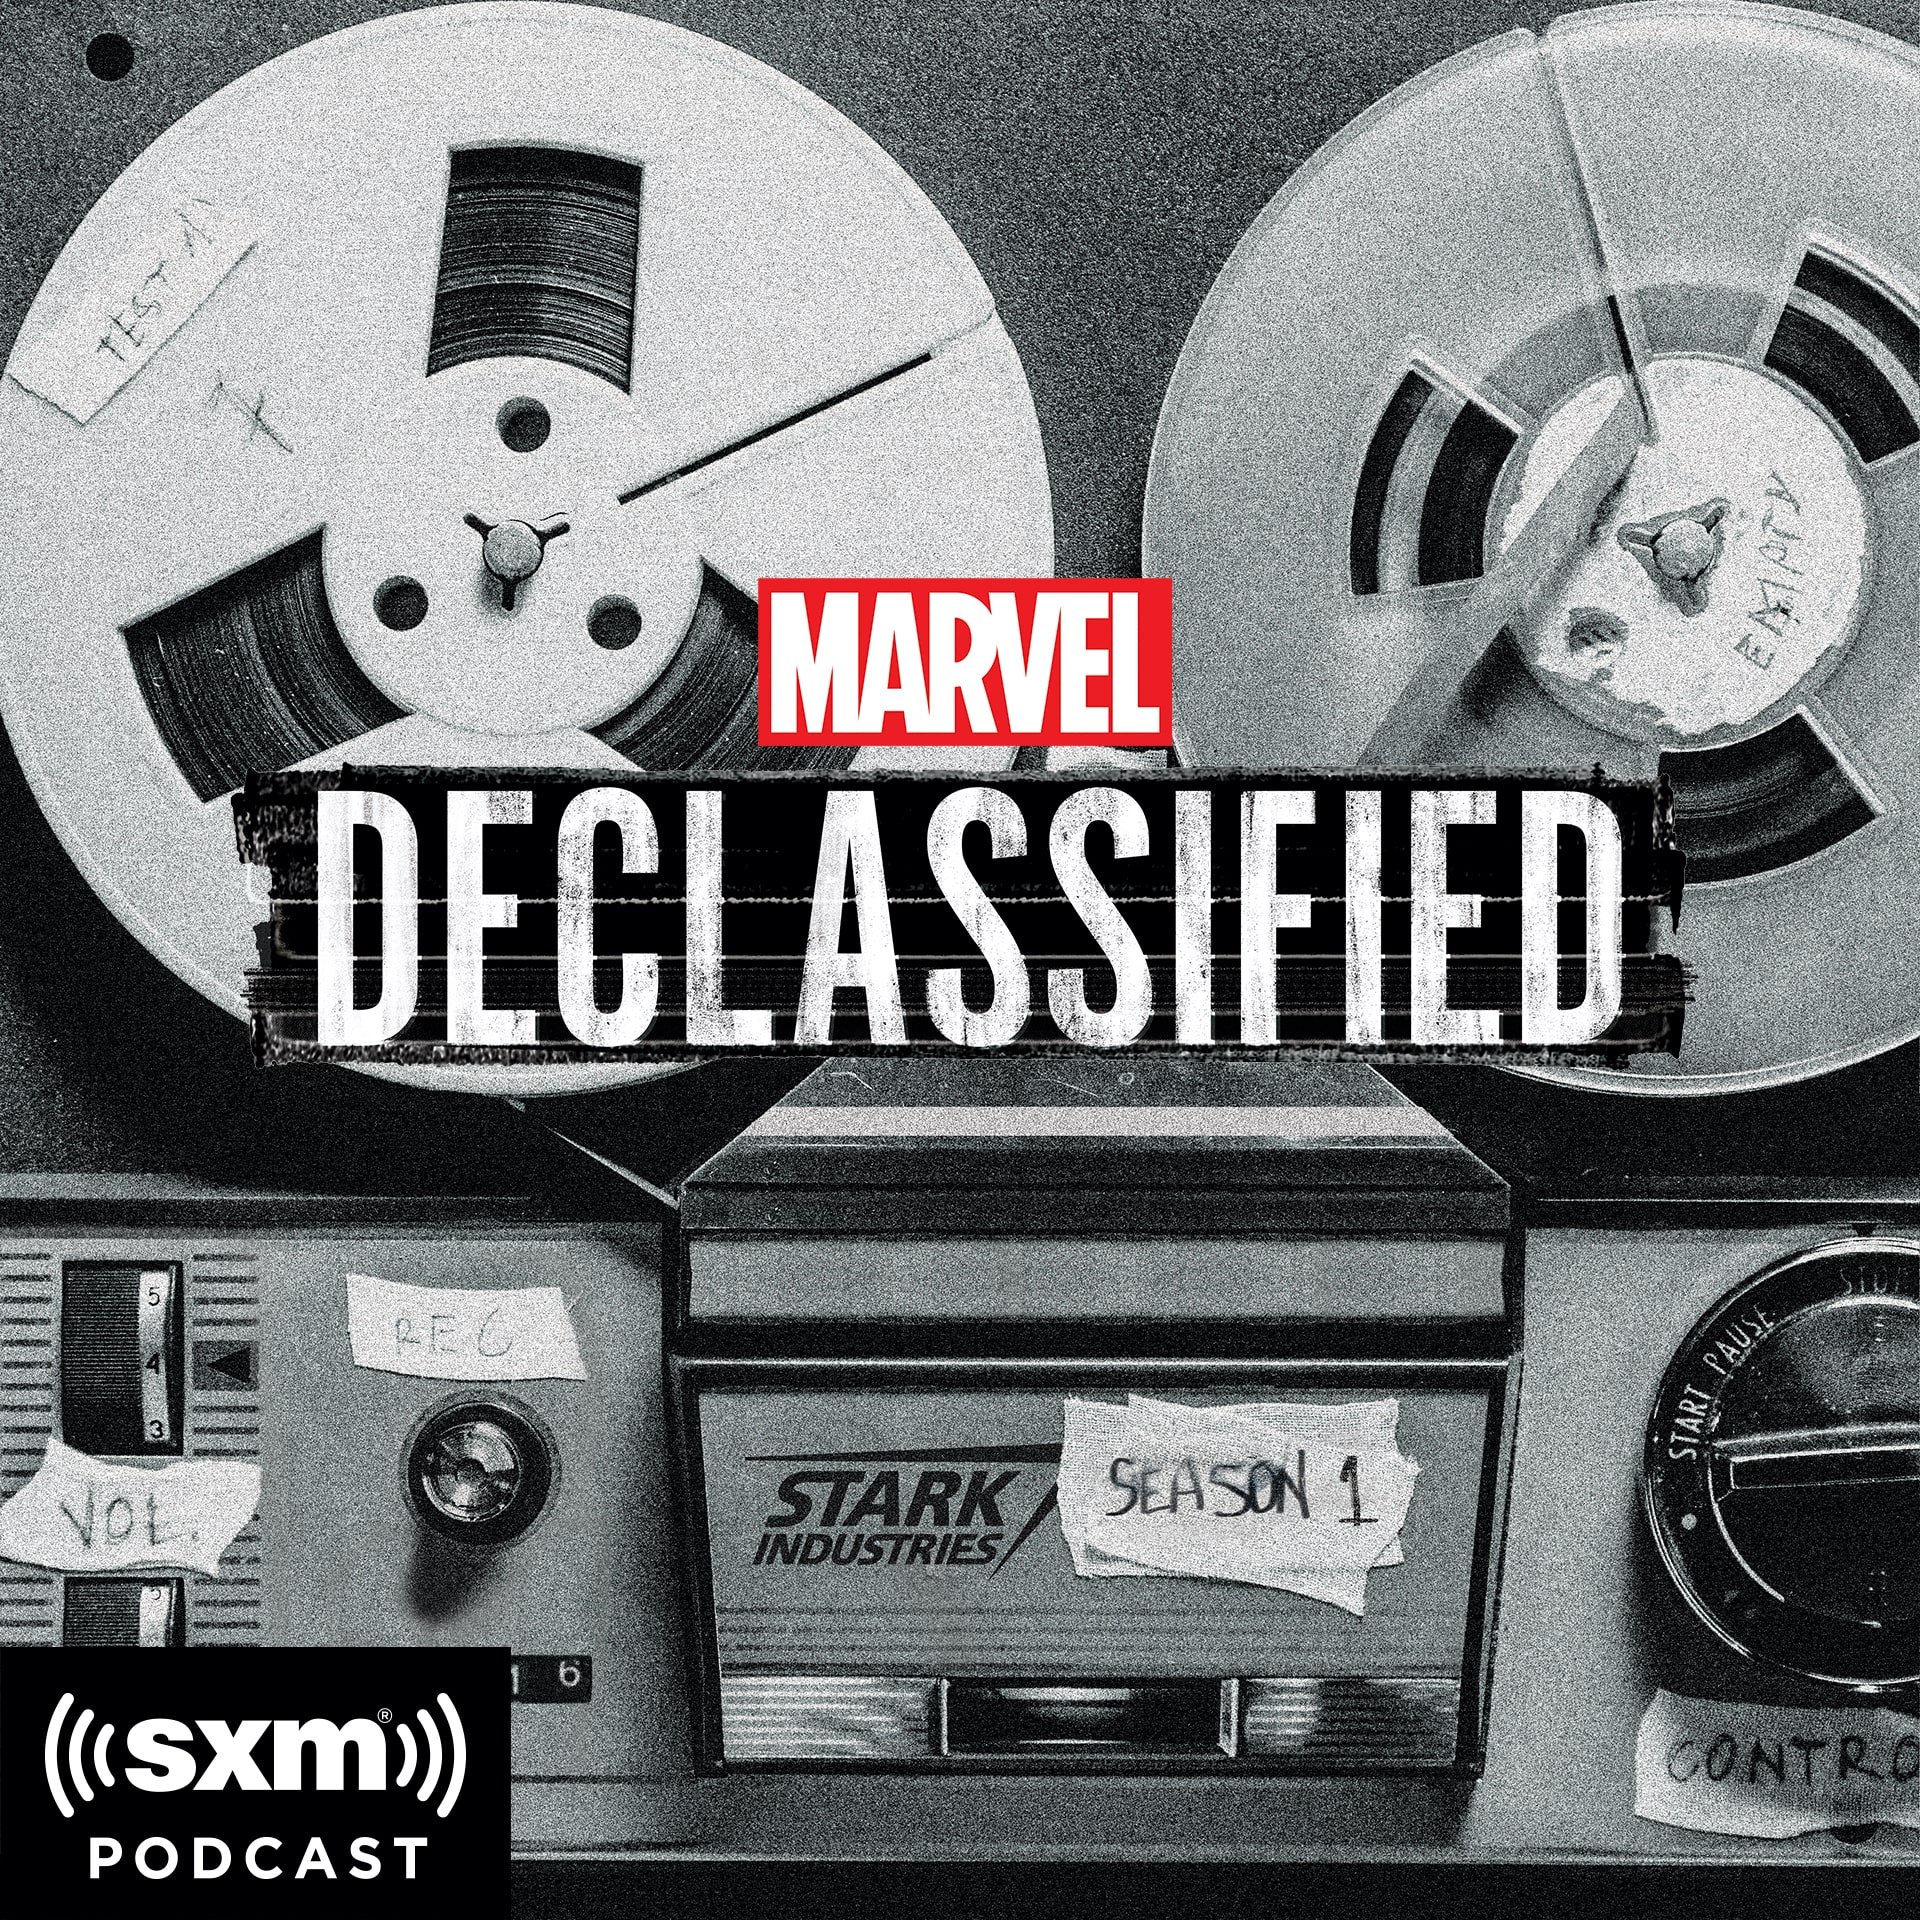 Marvel launches 'Marvel's Declassified' podcast exclusively on SiriusXM